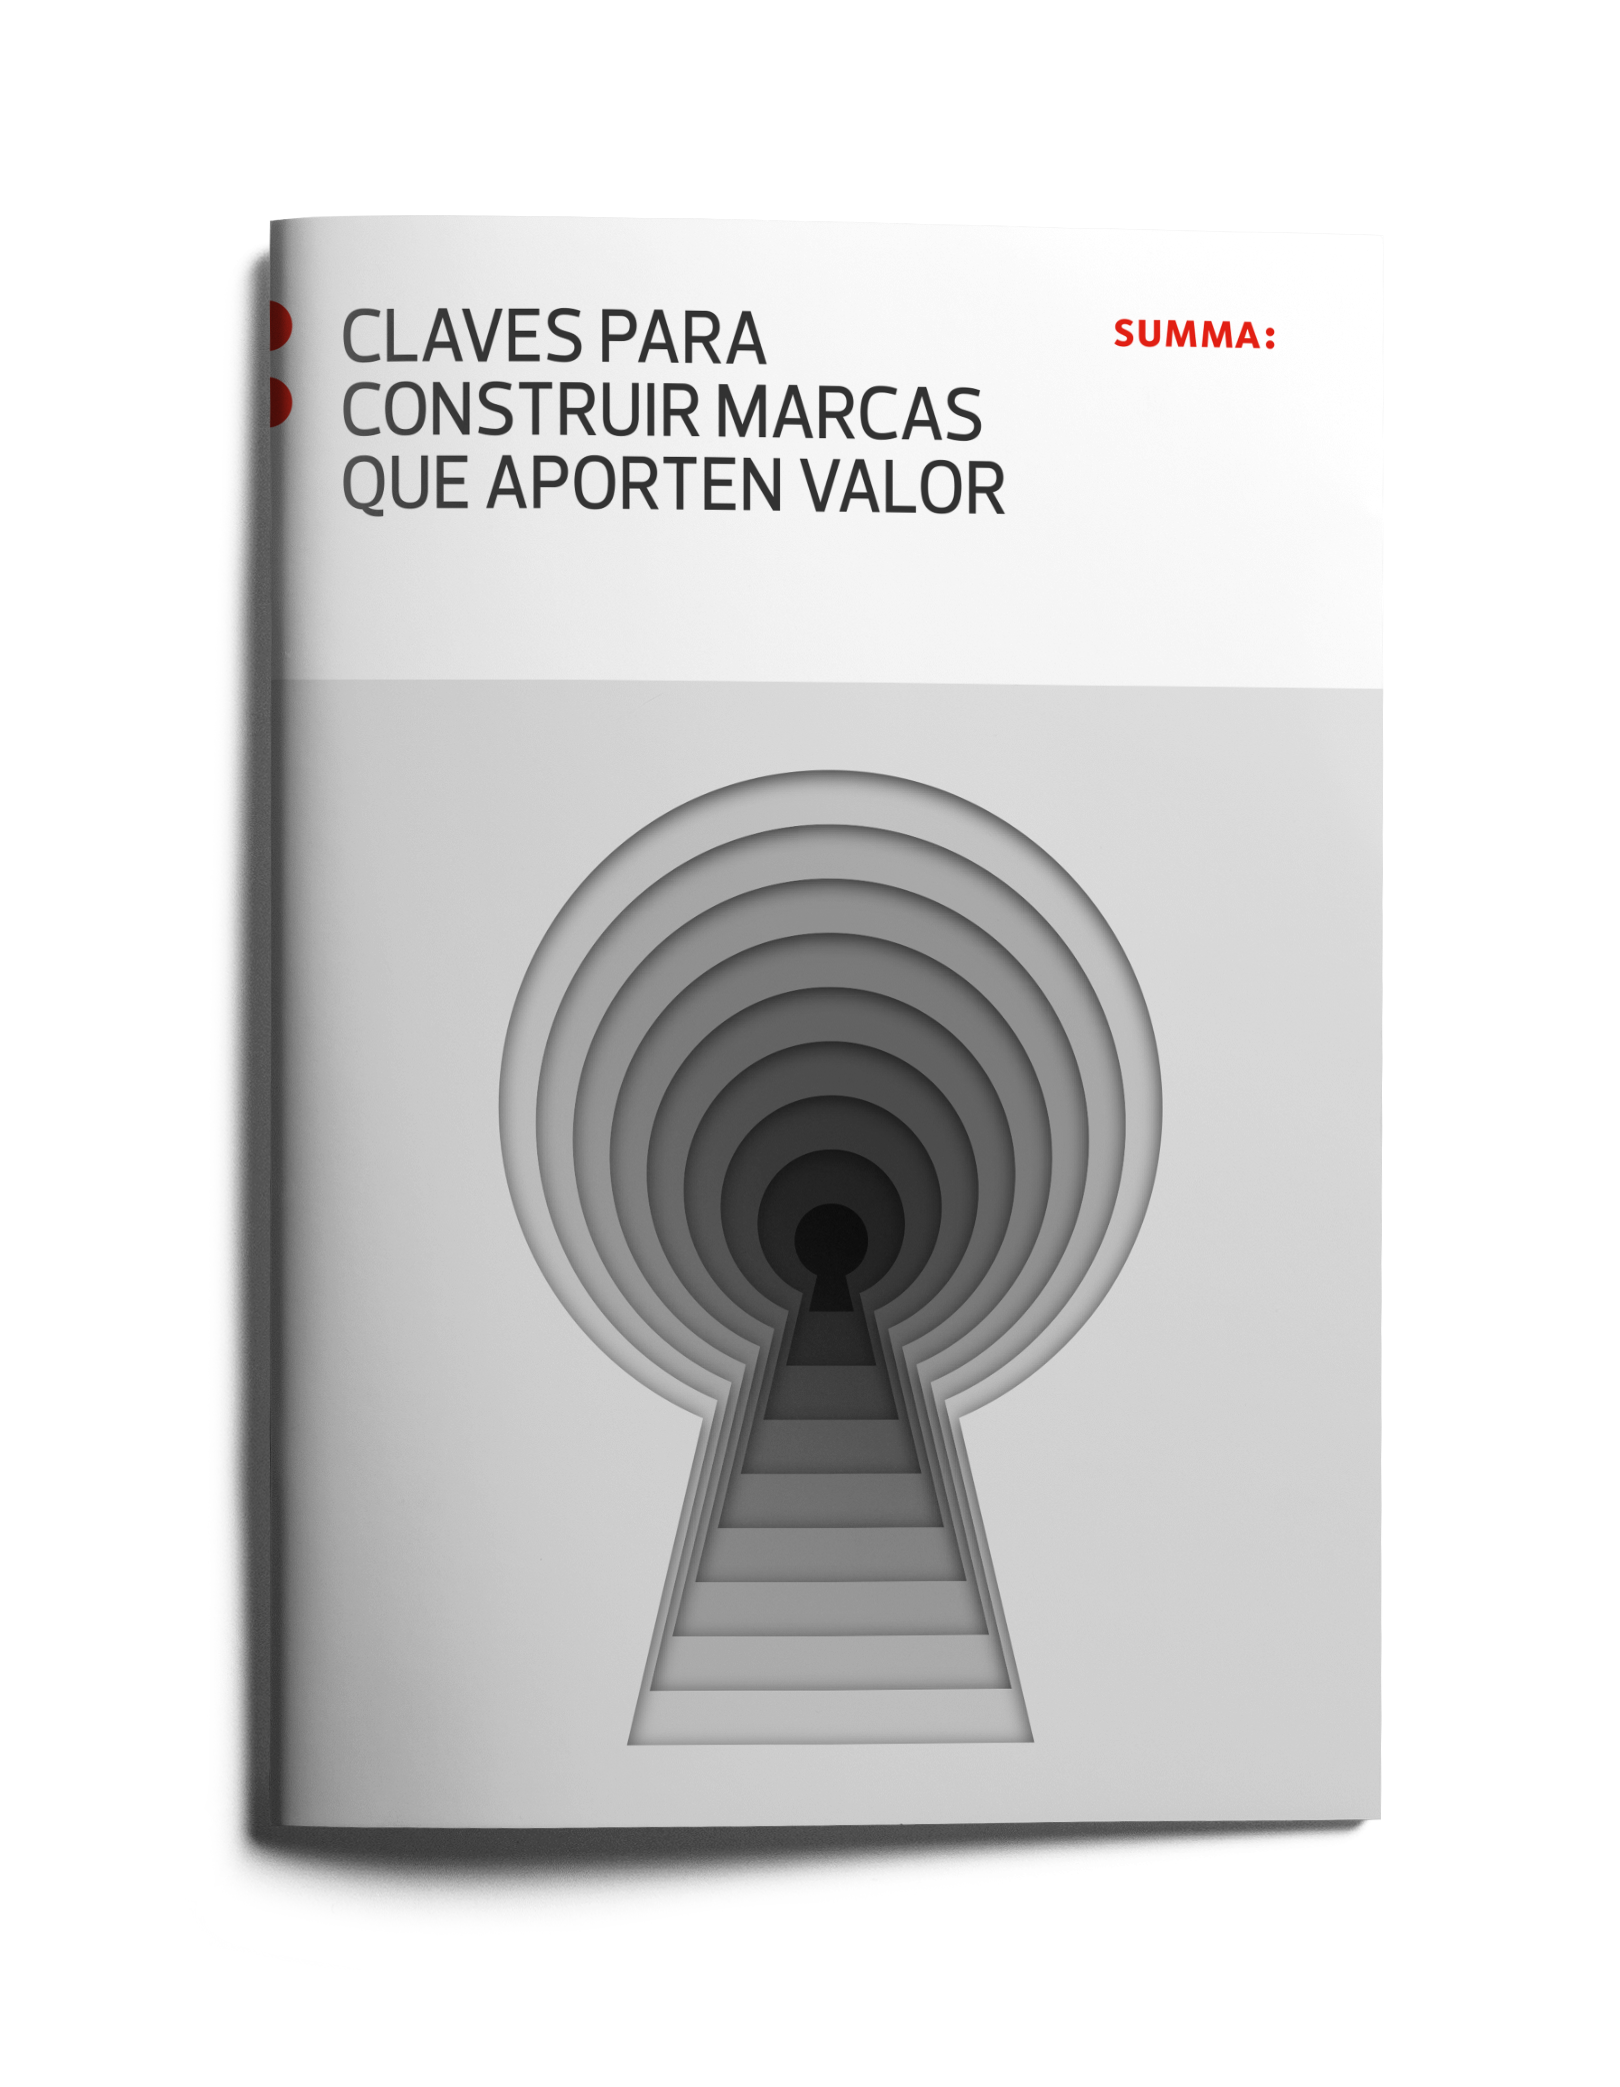 claves-marca.png